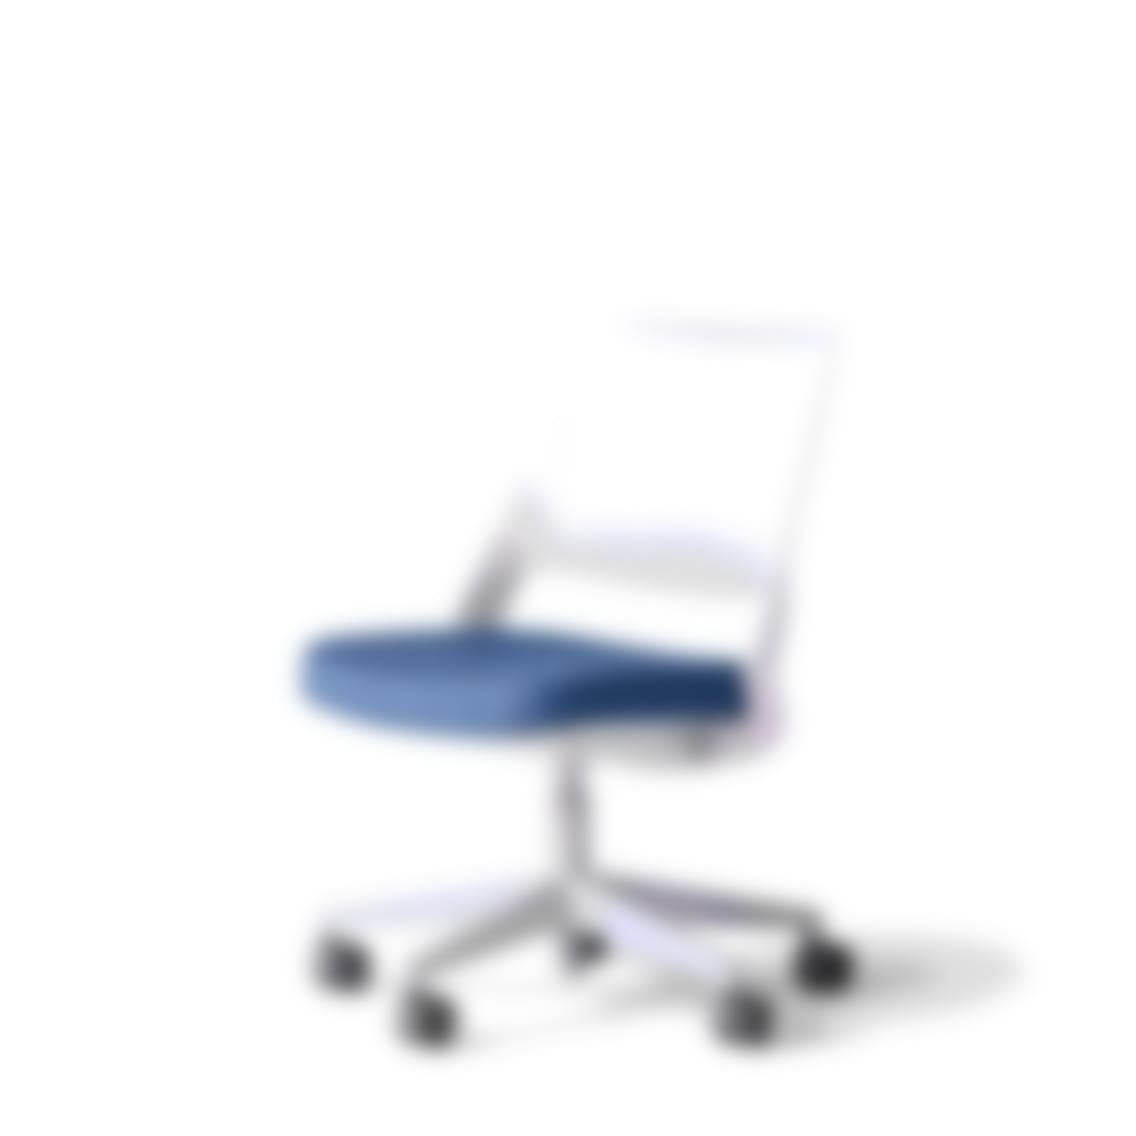 fully knoll ollo chair grey back blue seat